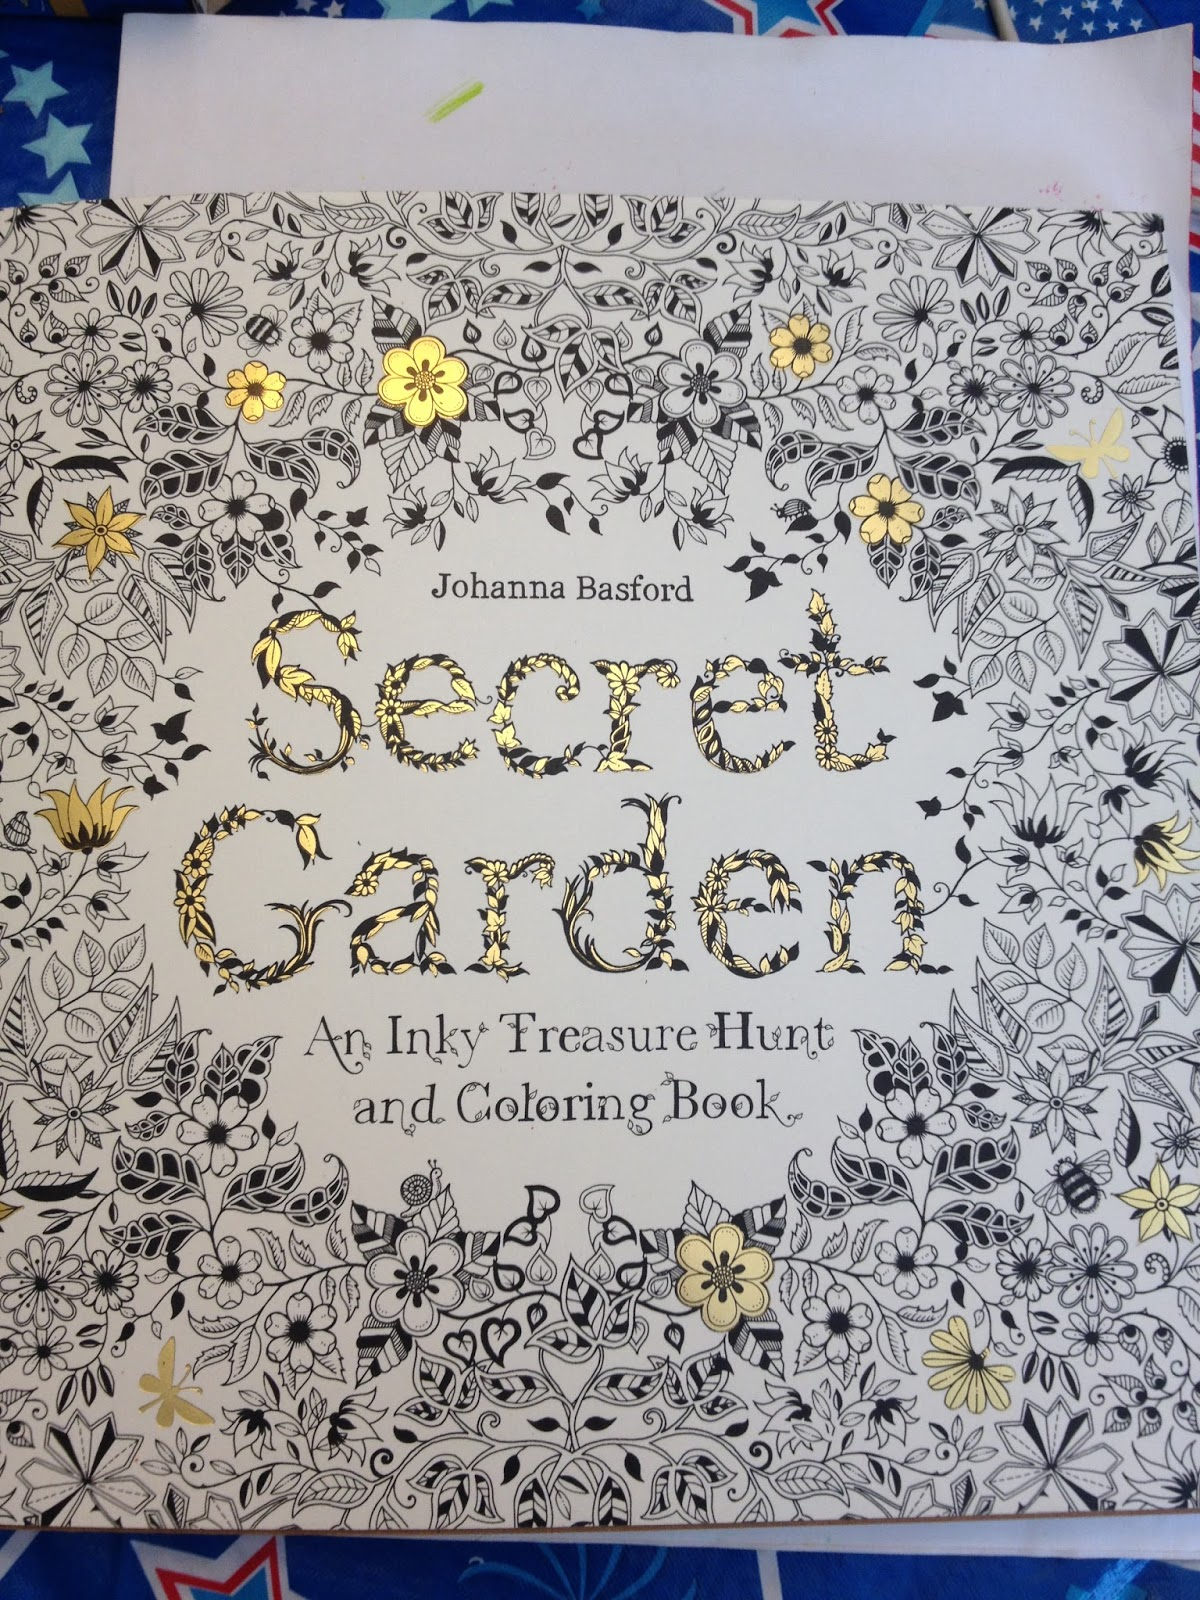 Pretty The Jersey Momma The Best Adult Coloring Books With Hot The Secret Garden Adult Coloring Book By Johanna Basford Is Super Popular With Delightful Garden Catalogue Also Comedy Covent Garden In Addition Best Garden Ponds And Jesmond Gardens Primary School As Well As Large Garden Thermometer Additionally Garden Weddings In Durban Venues From Thejerseymommacom With   Hot The Jersey Momma The Best Adult Coloring Books With Delightful The Secret Garden Adult Coloring Book By Johanna Basford Is Super Popular And Pretty Garden Catalogue Also Comedy Covent Garden In Addition Best Garden Ponds From Thejerseymommacom